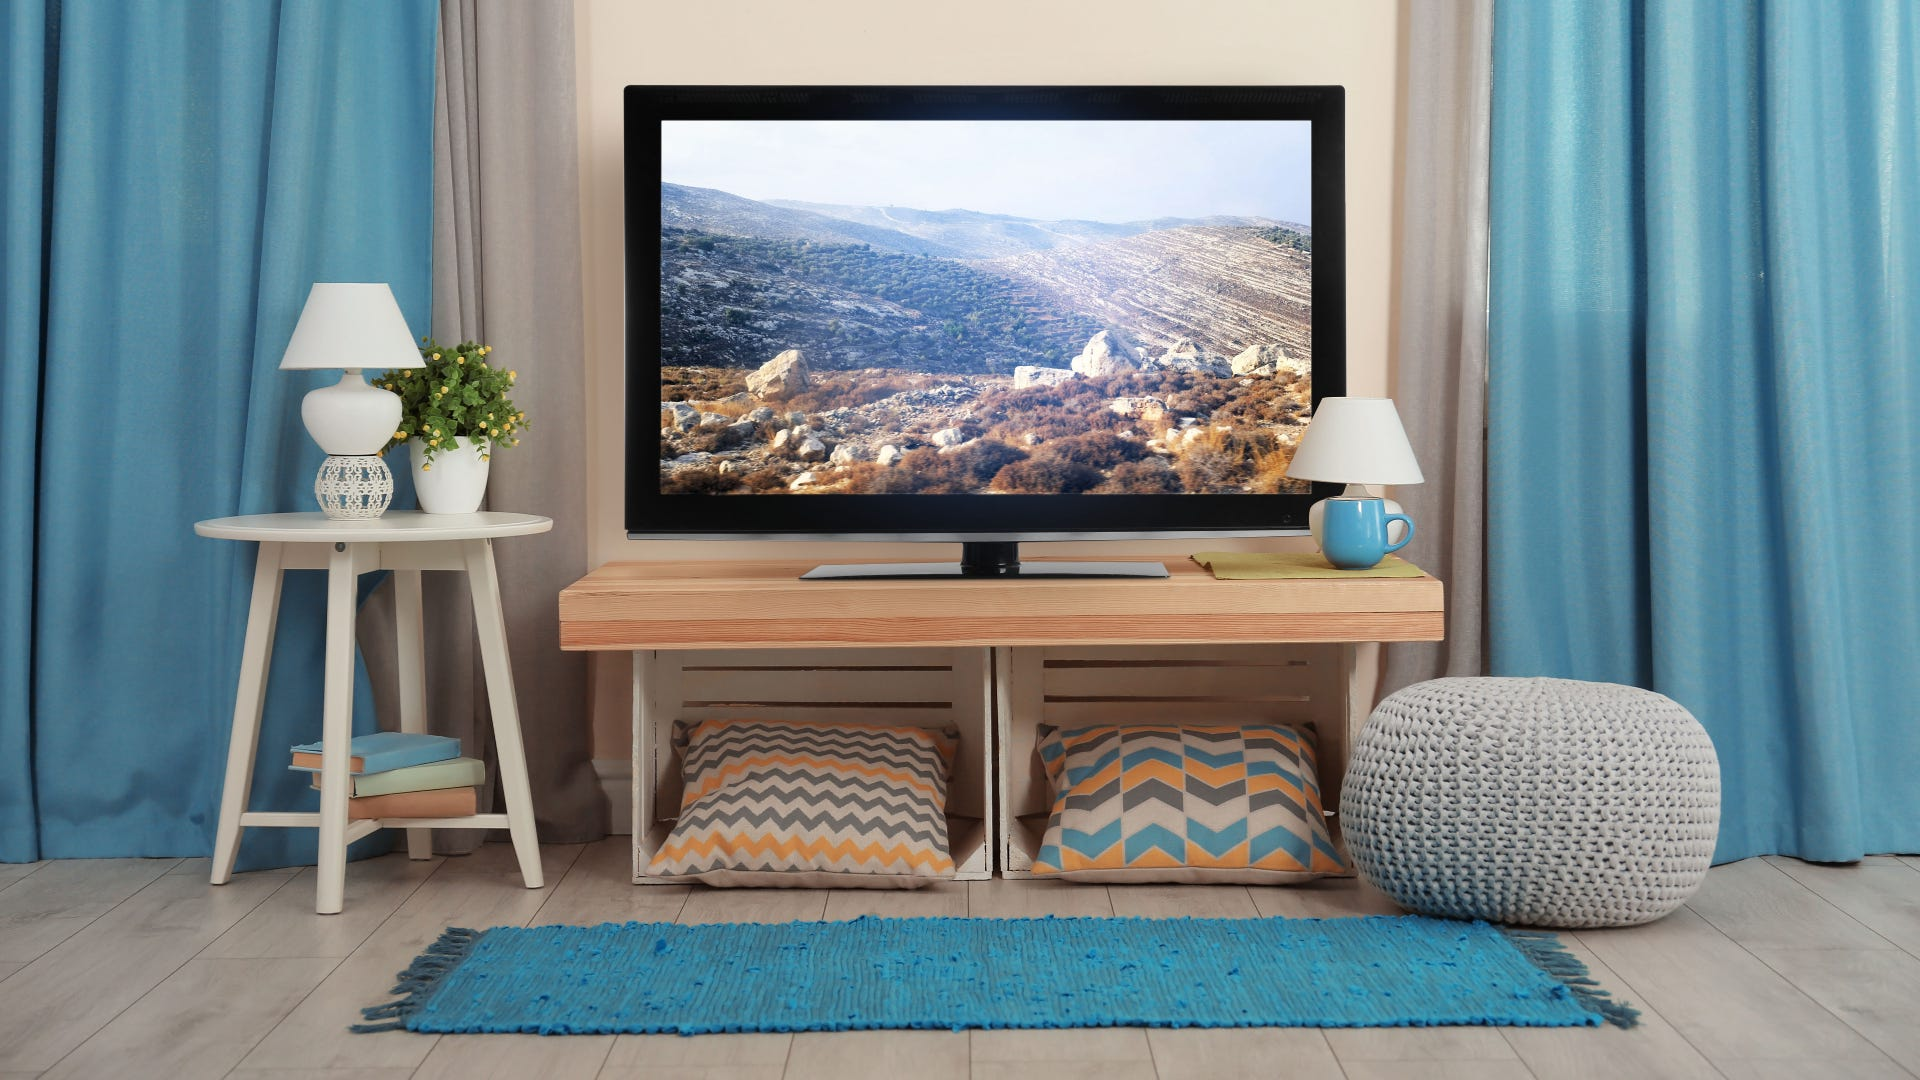 The cozy interior of a living room with a TV on a stand.